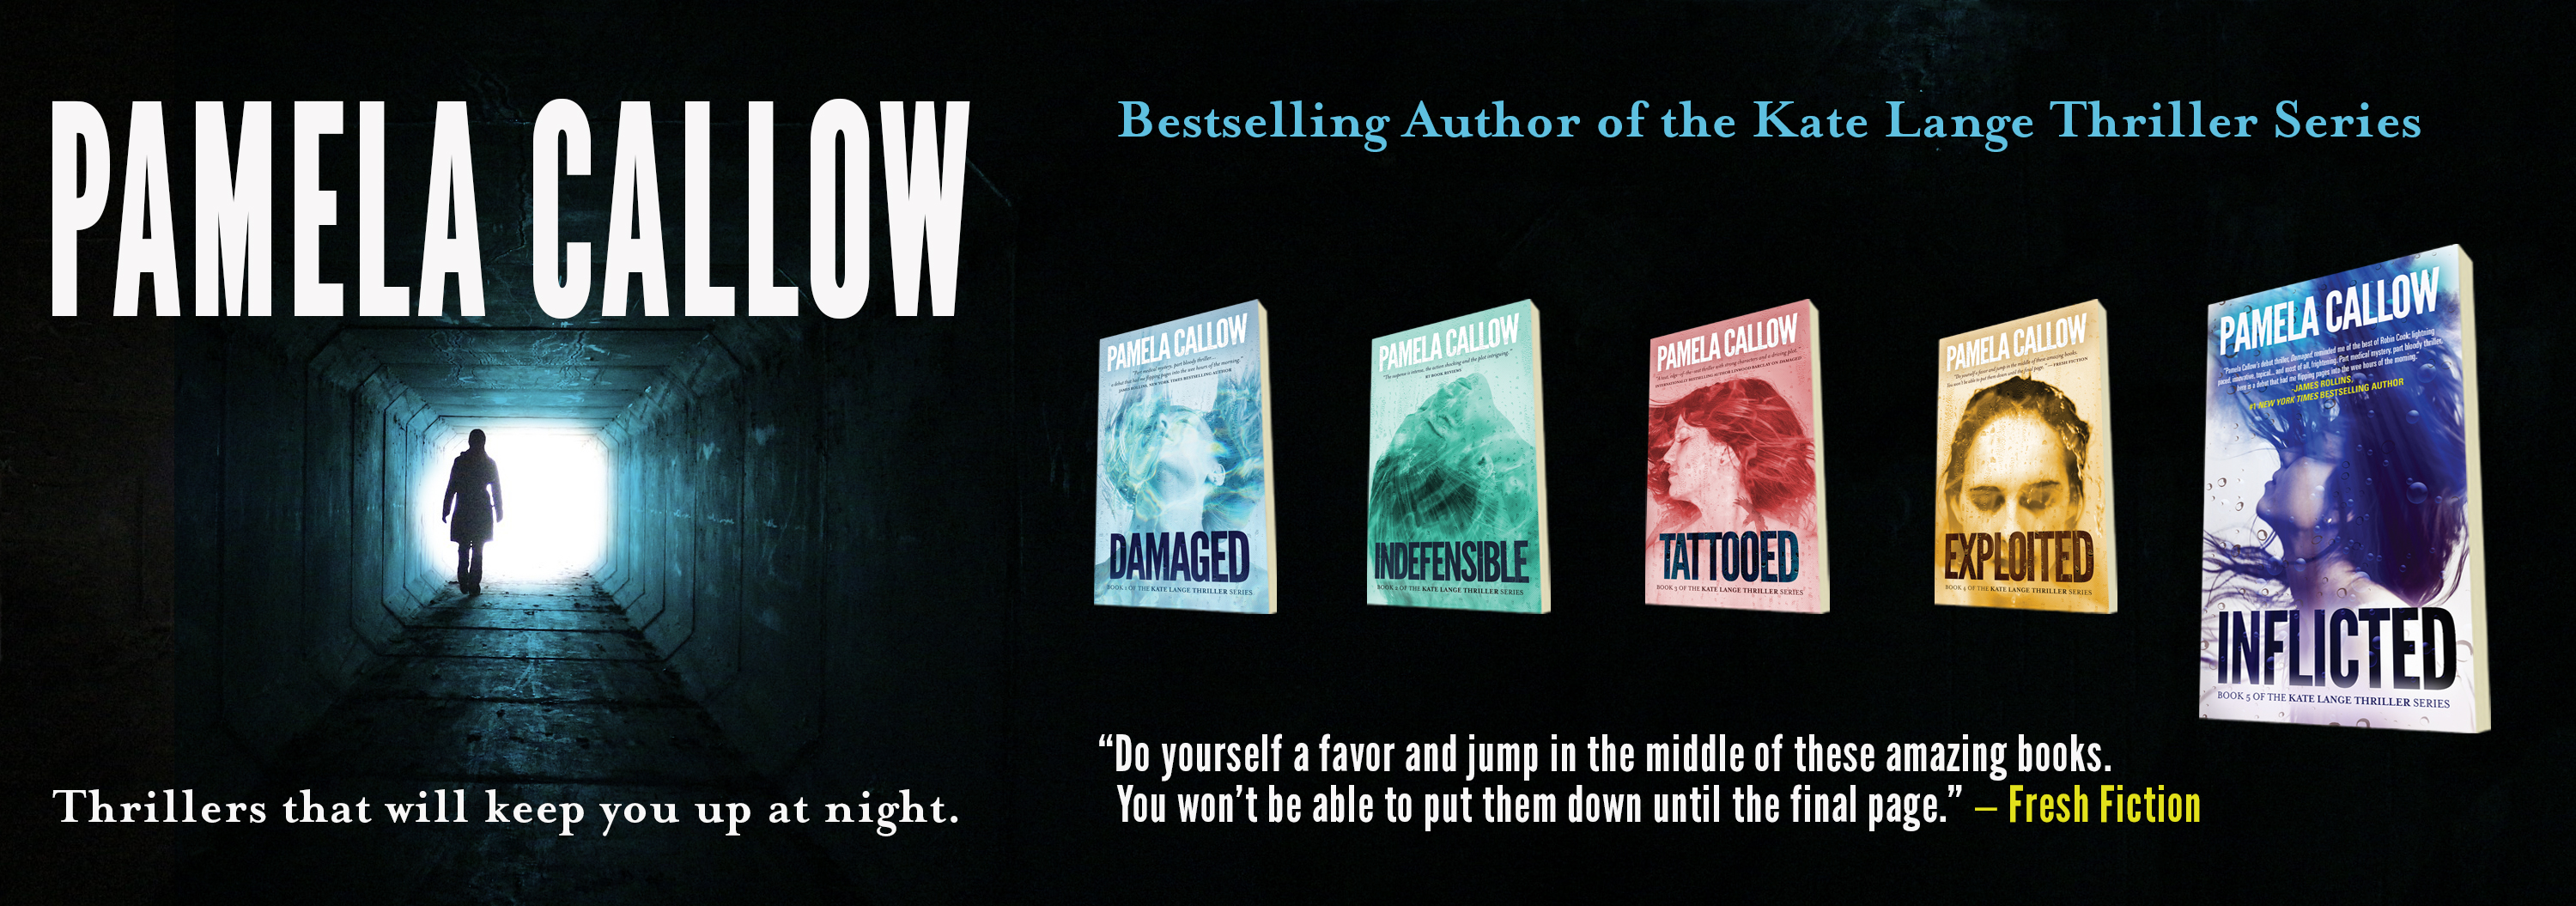 Home Page of Bestselling Thriller Author Pamela Callow